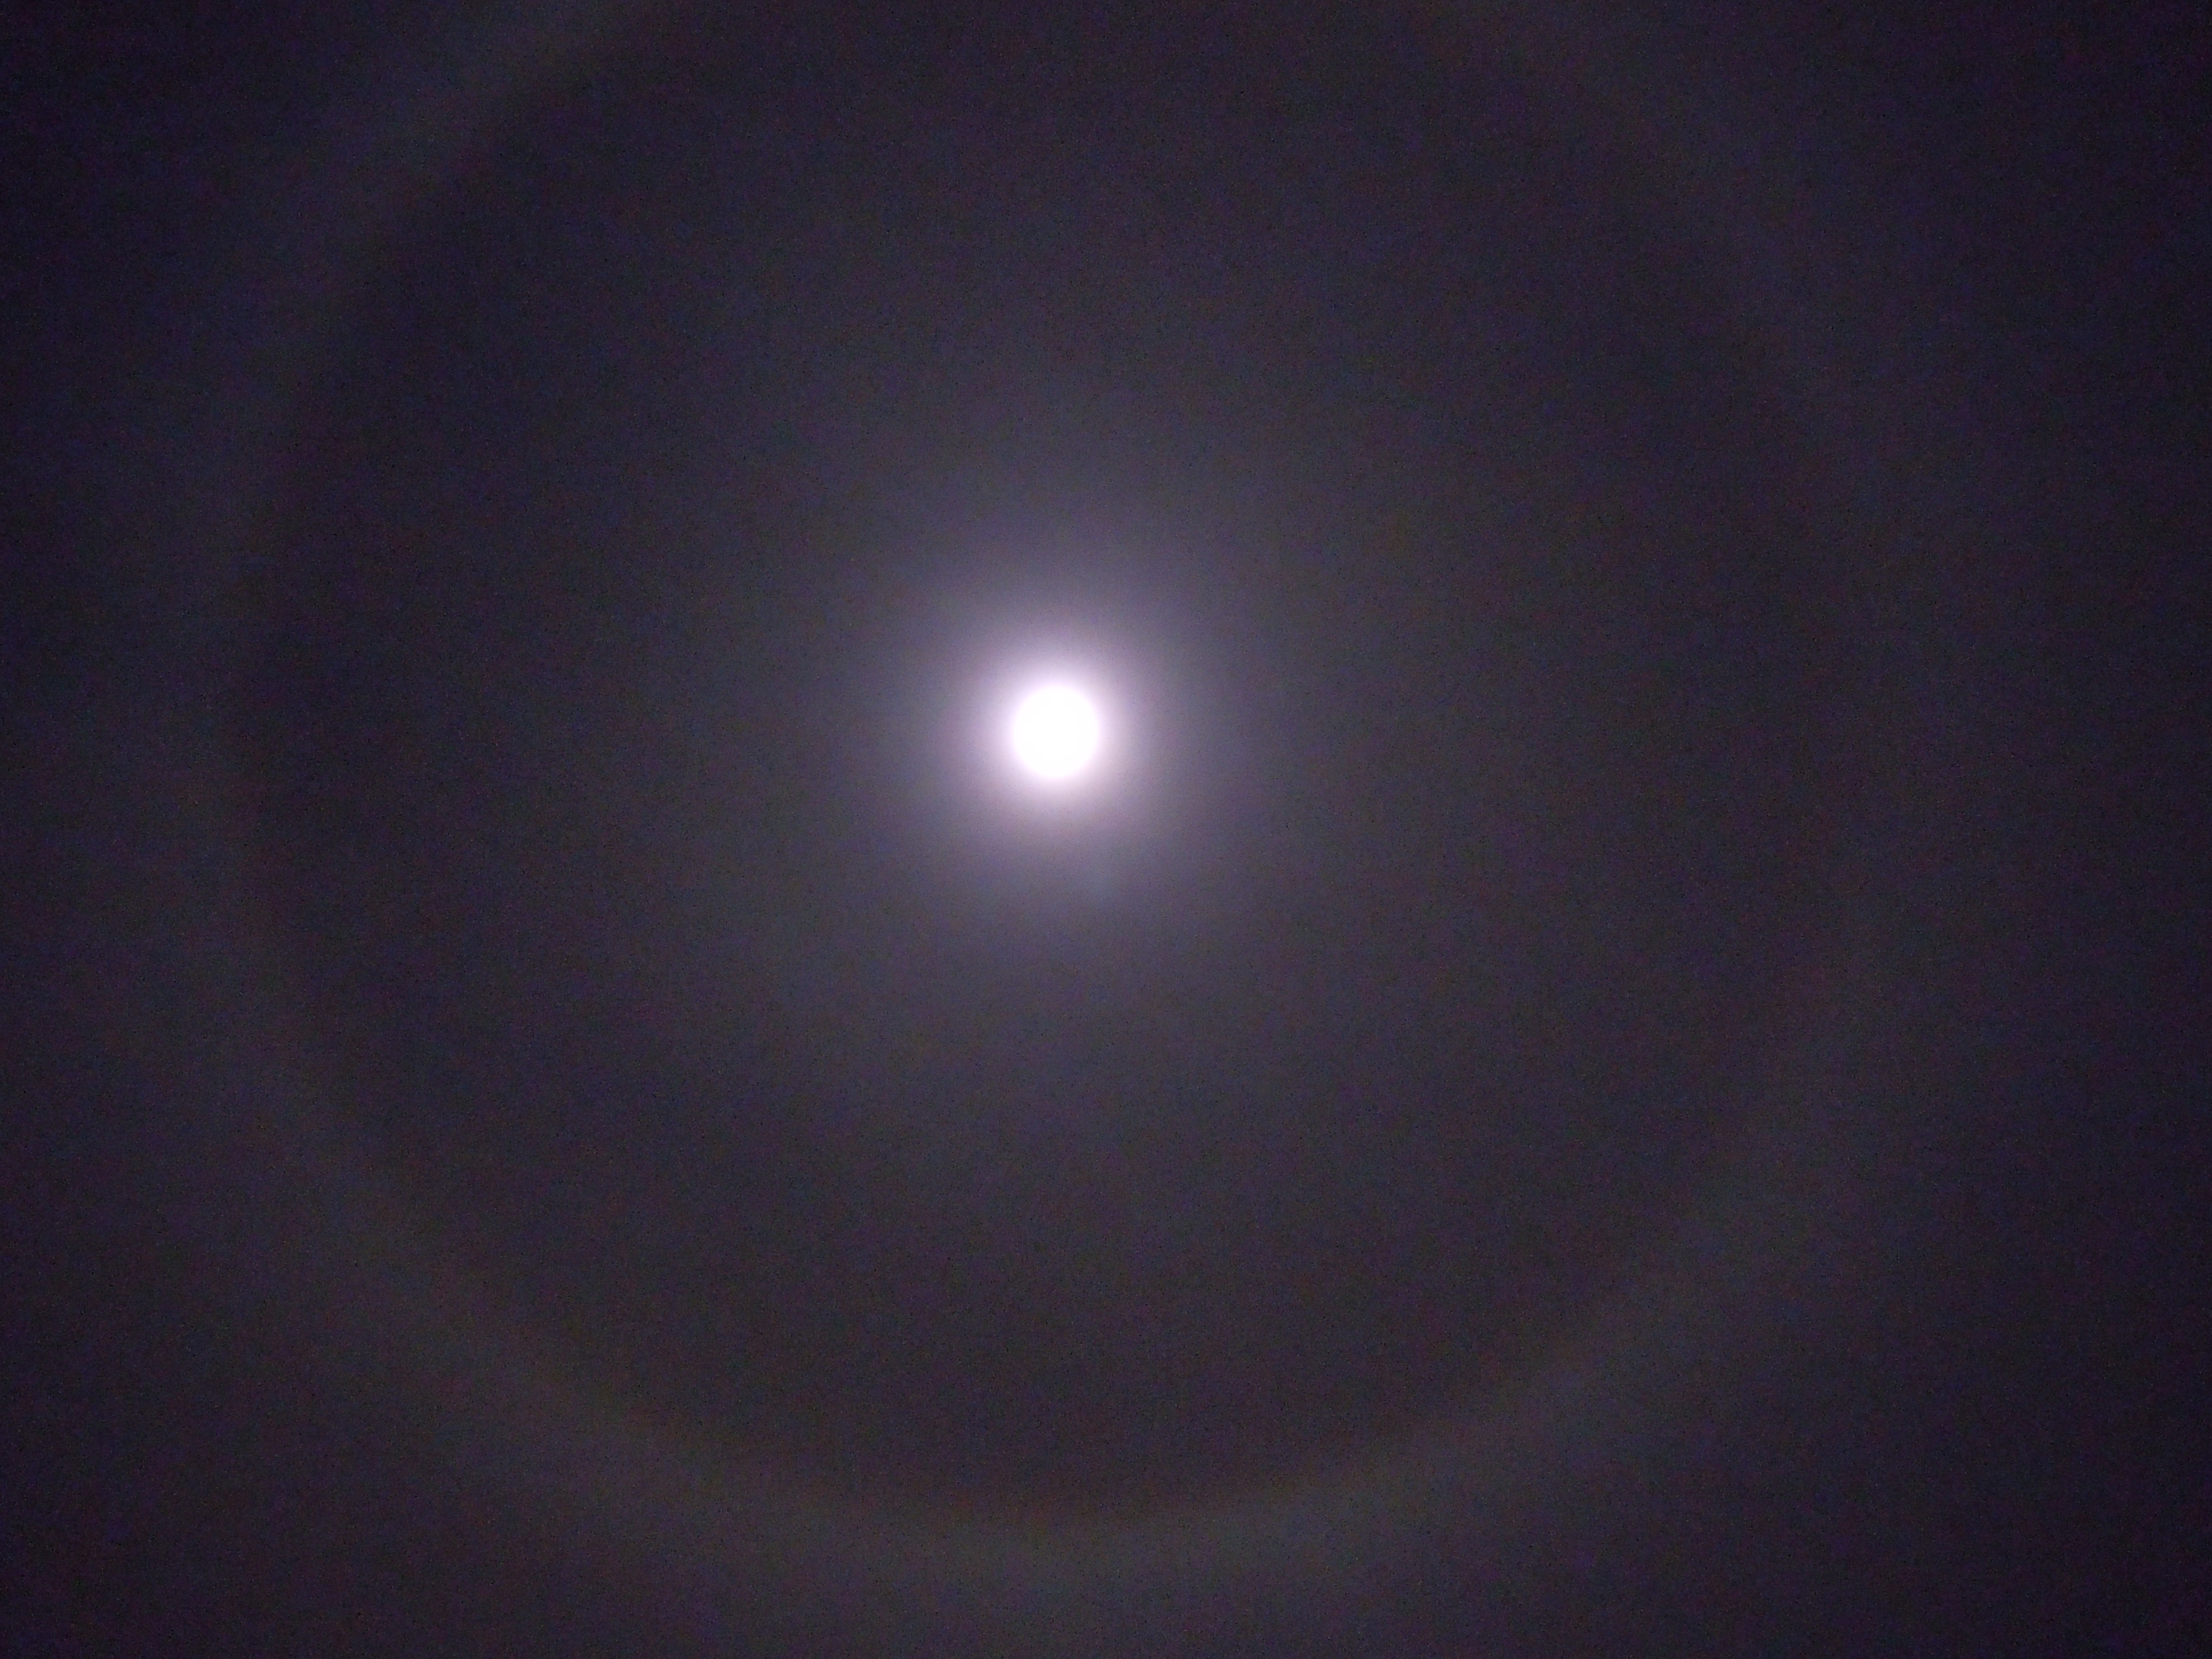 Halo Around The Moon.jpg